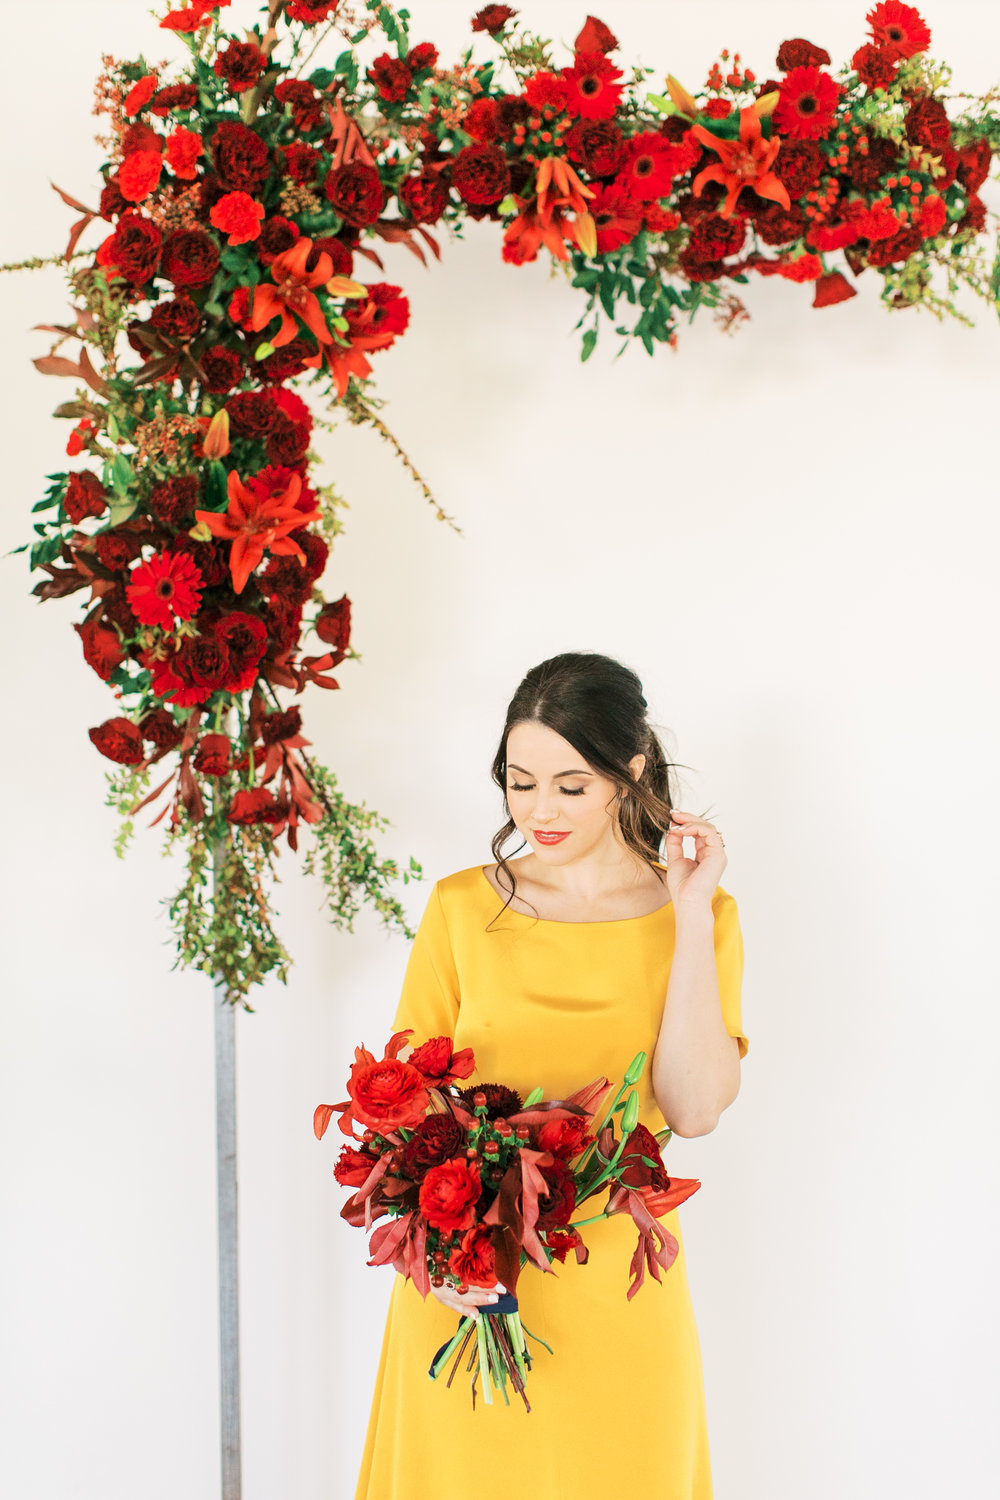 red and yellow wedding inspiration - red flower arch ceremony inspiration